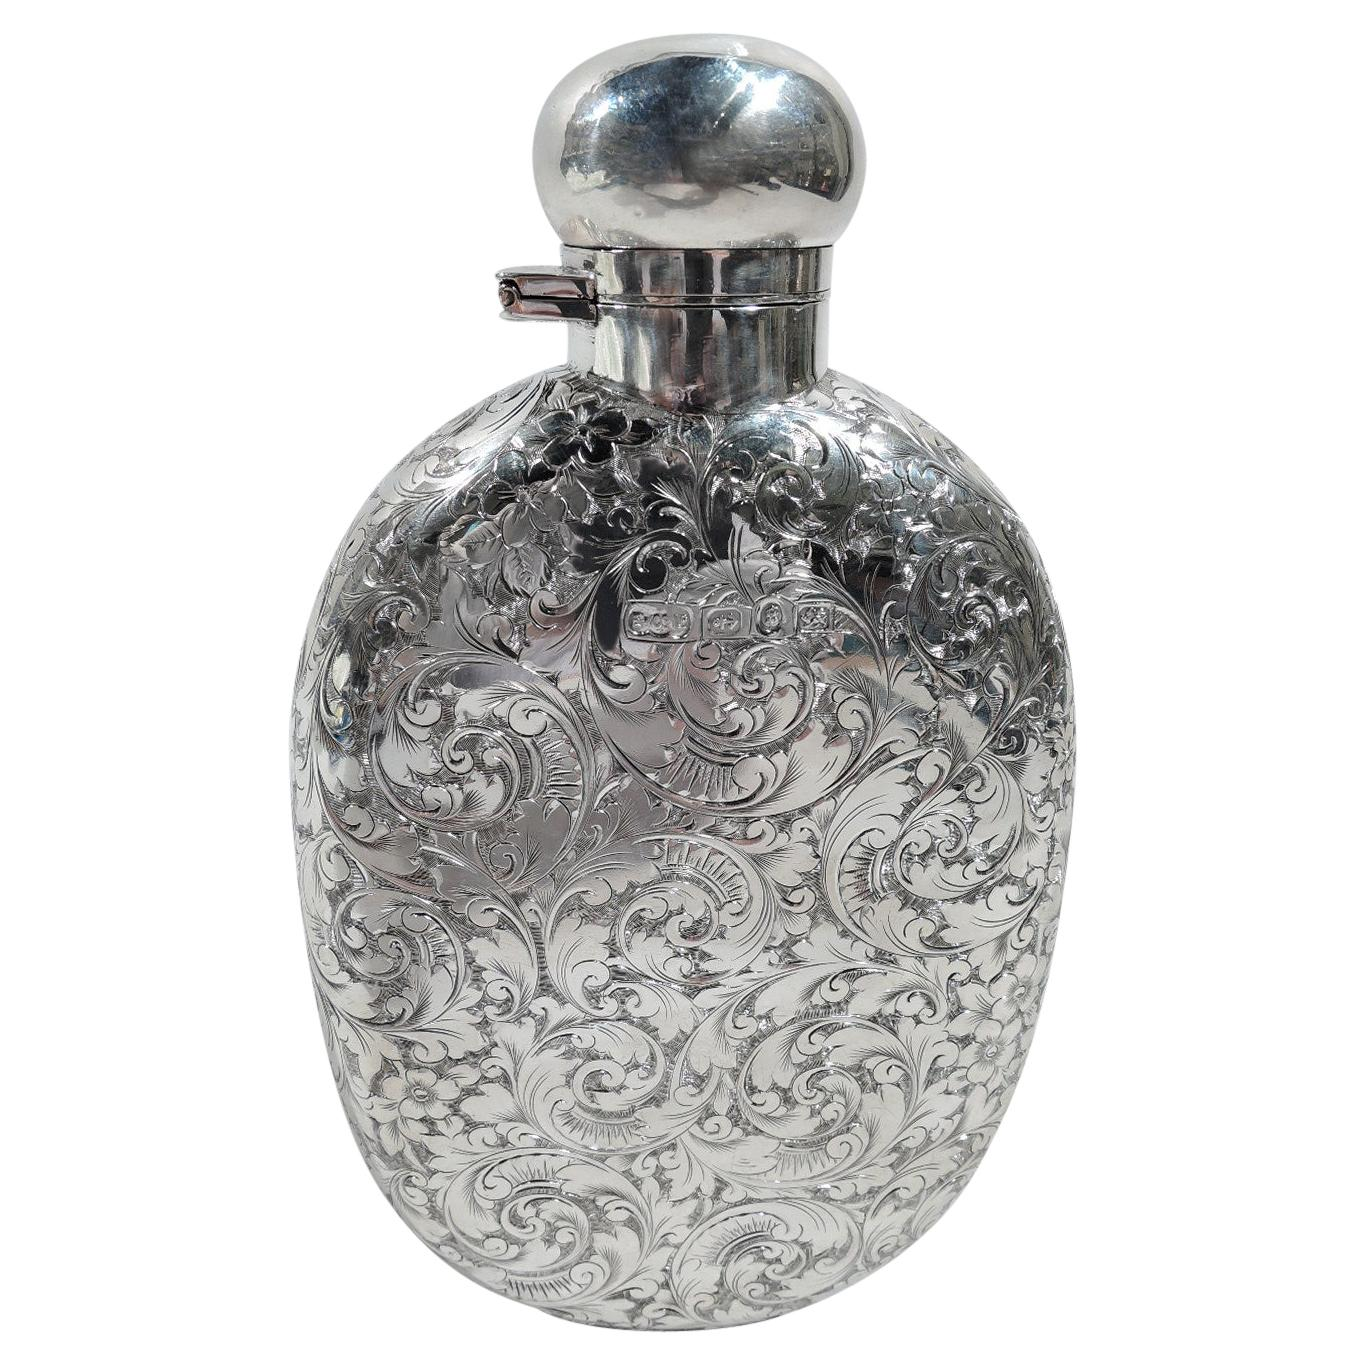 Antique English Victorian Sterling Silver Flask by Elkington